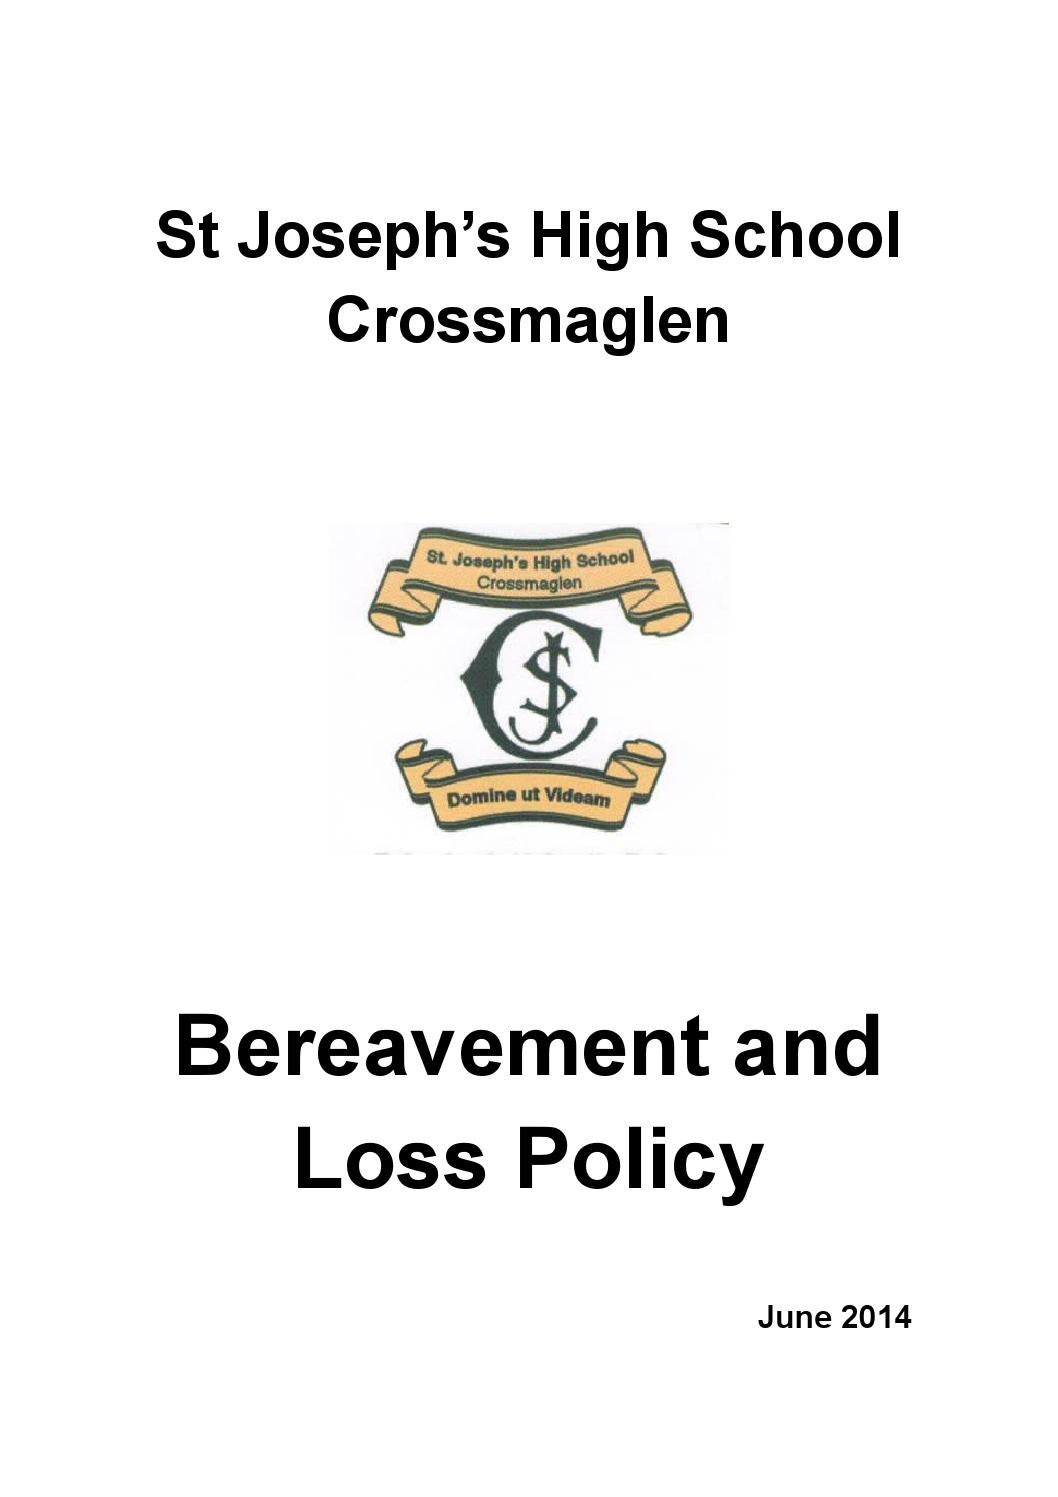 St joseph's bereavement and loss policy by St Joseph's HS